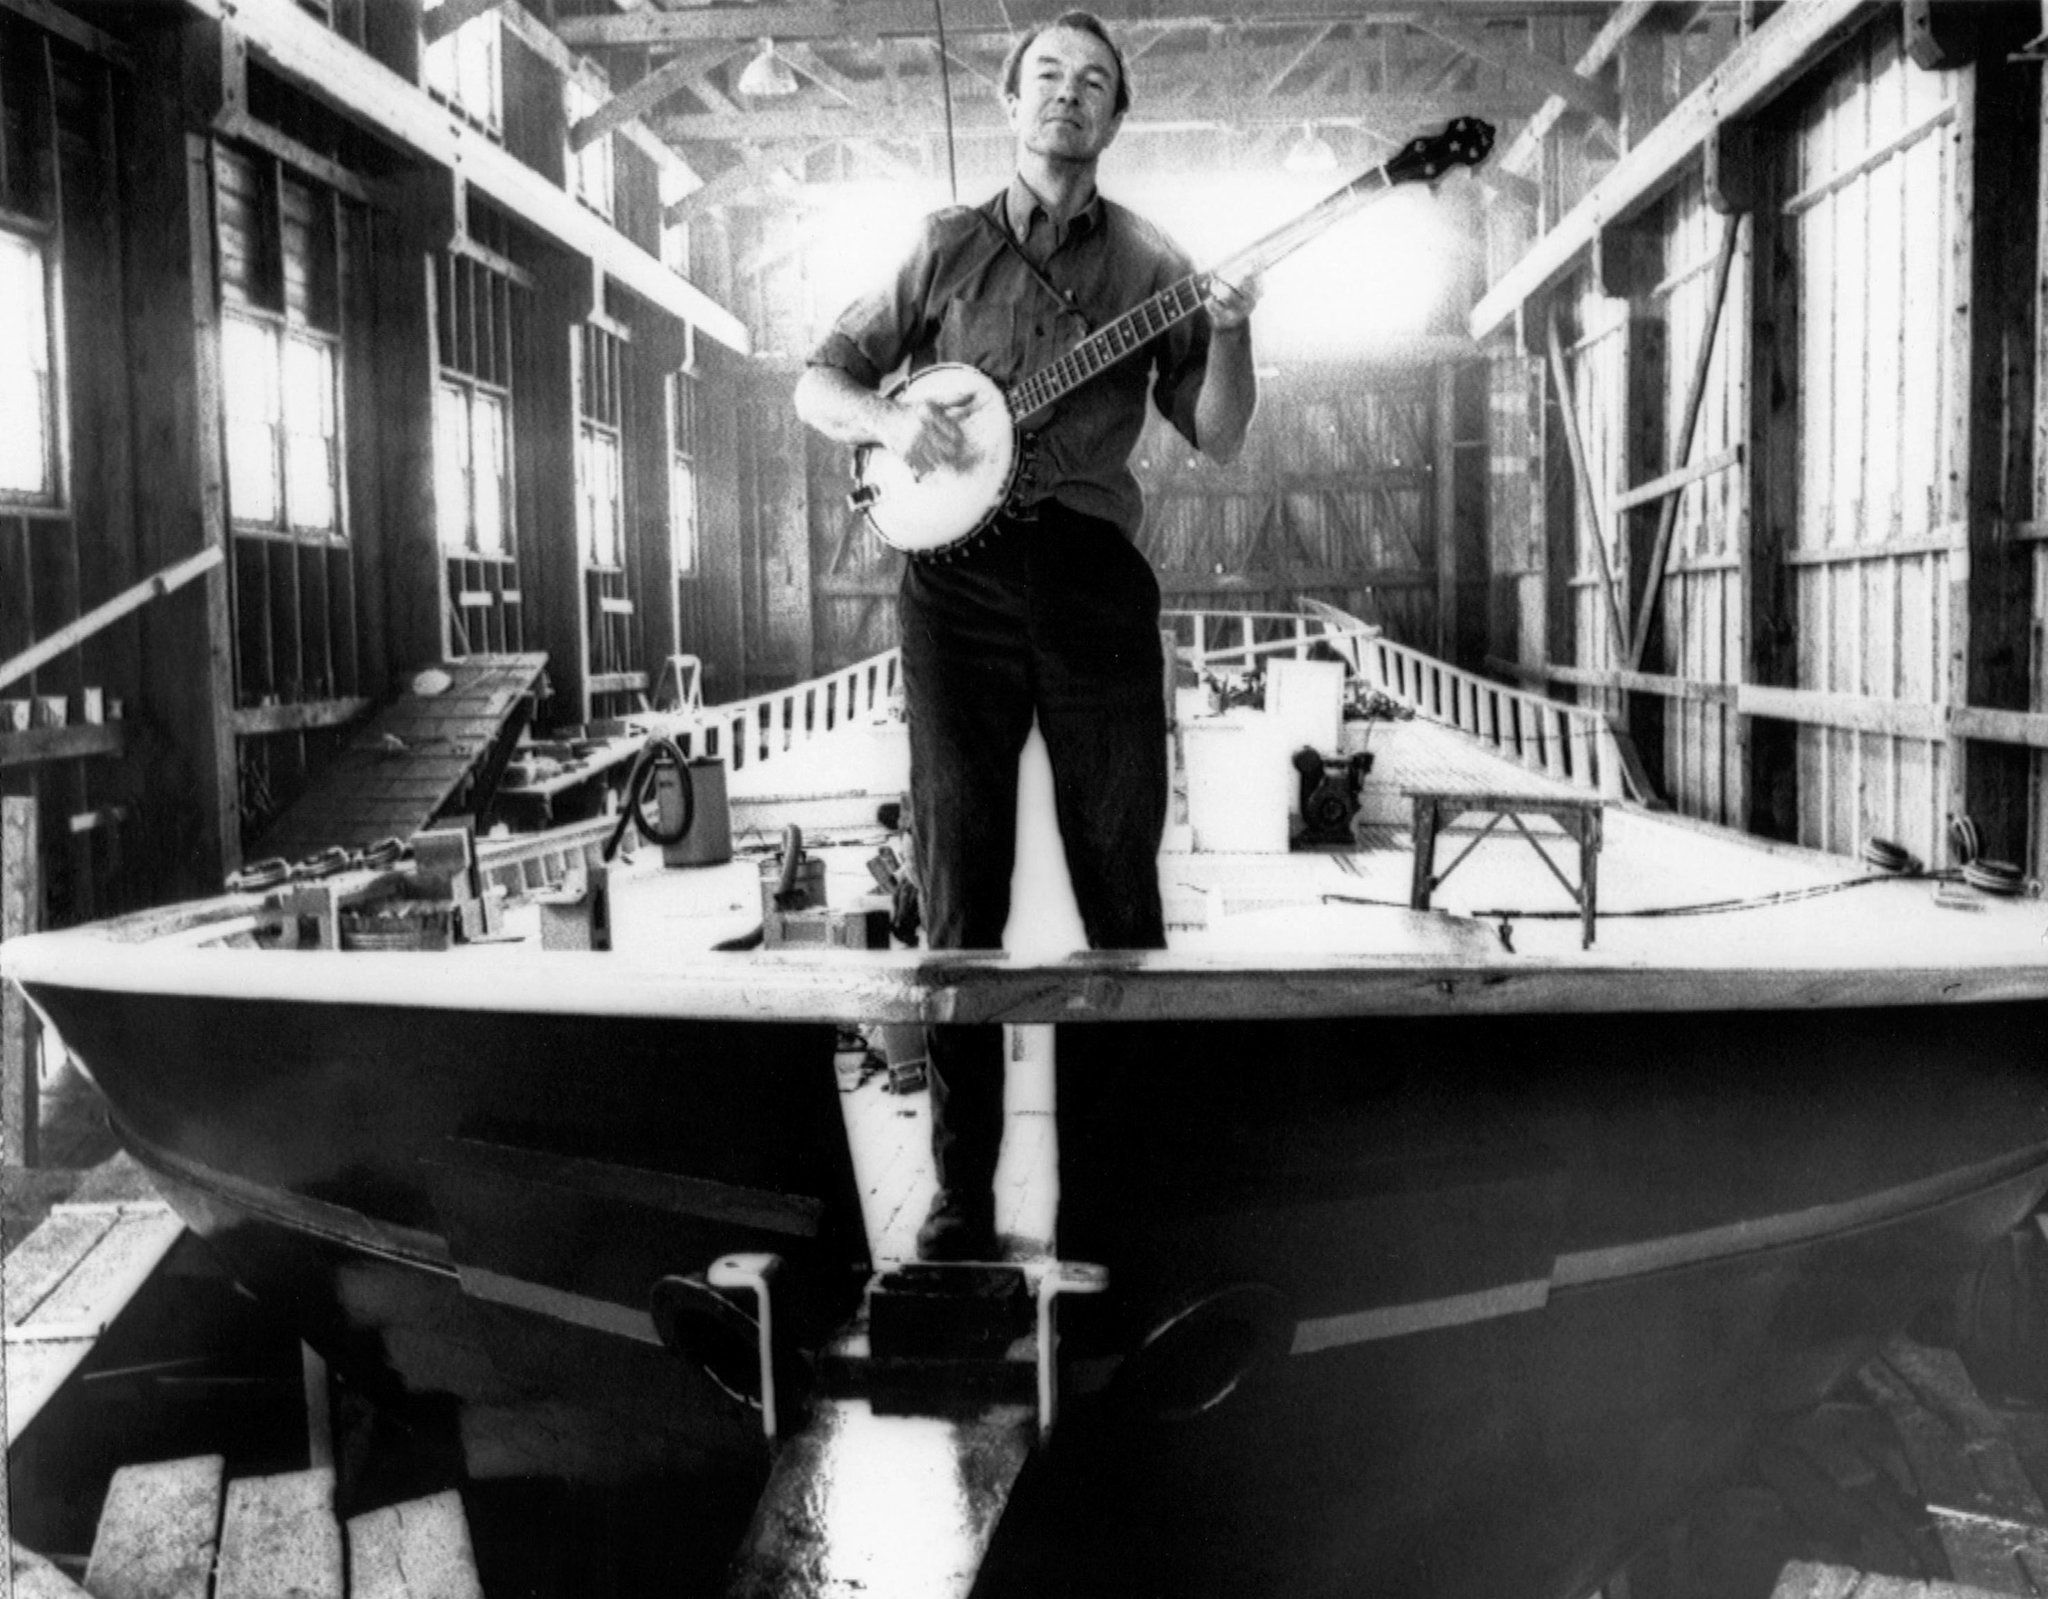 Pete Seeger, strumming a banjo on the bow of the Clearwater sloop.  He and a group of volunteers raised $150,000 to build the vessel and used it to dramatize the fight against pollution in the Hudson River Valley. He and his wife were instrumental in saving the Hudson, which industry had polluted to the point where we, as children, were not allowed to even touch the water. I remember walking along the shore, often finding the bones of unfortunate creatures who drank from the water.